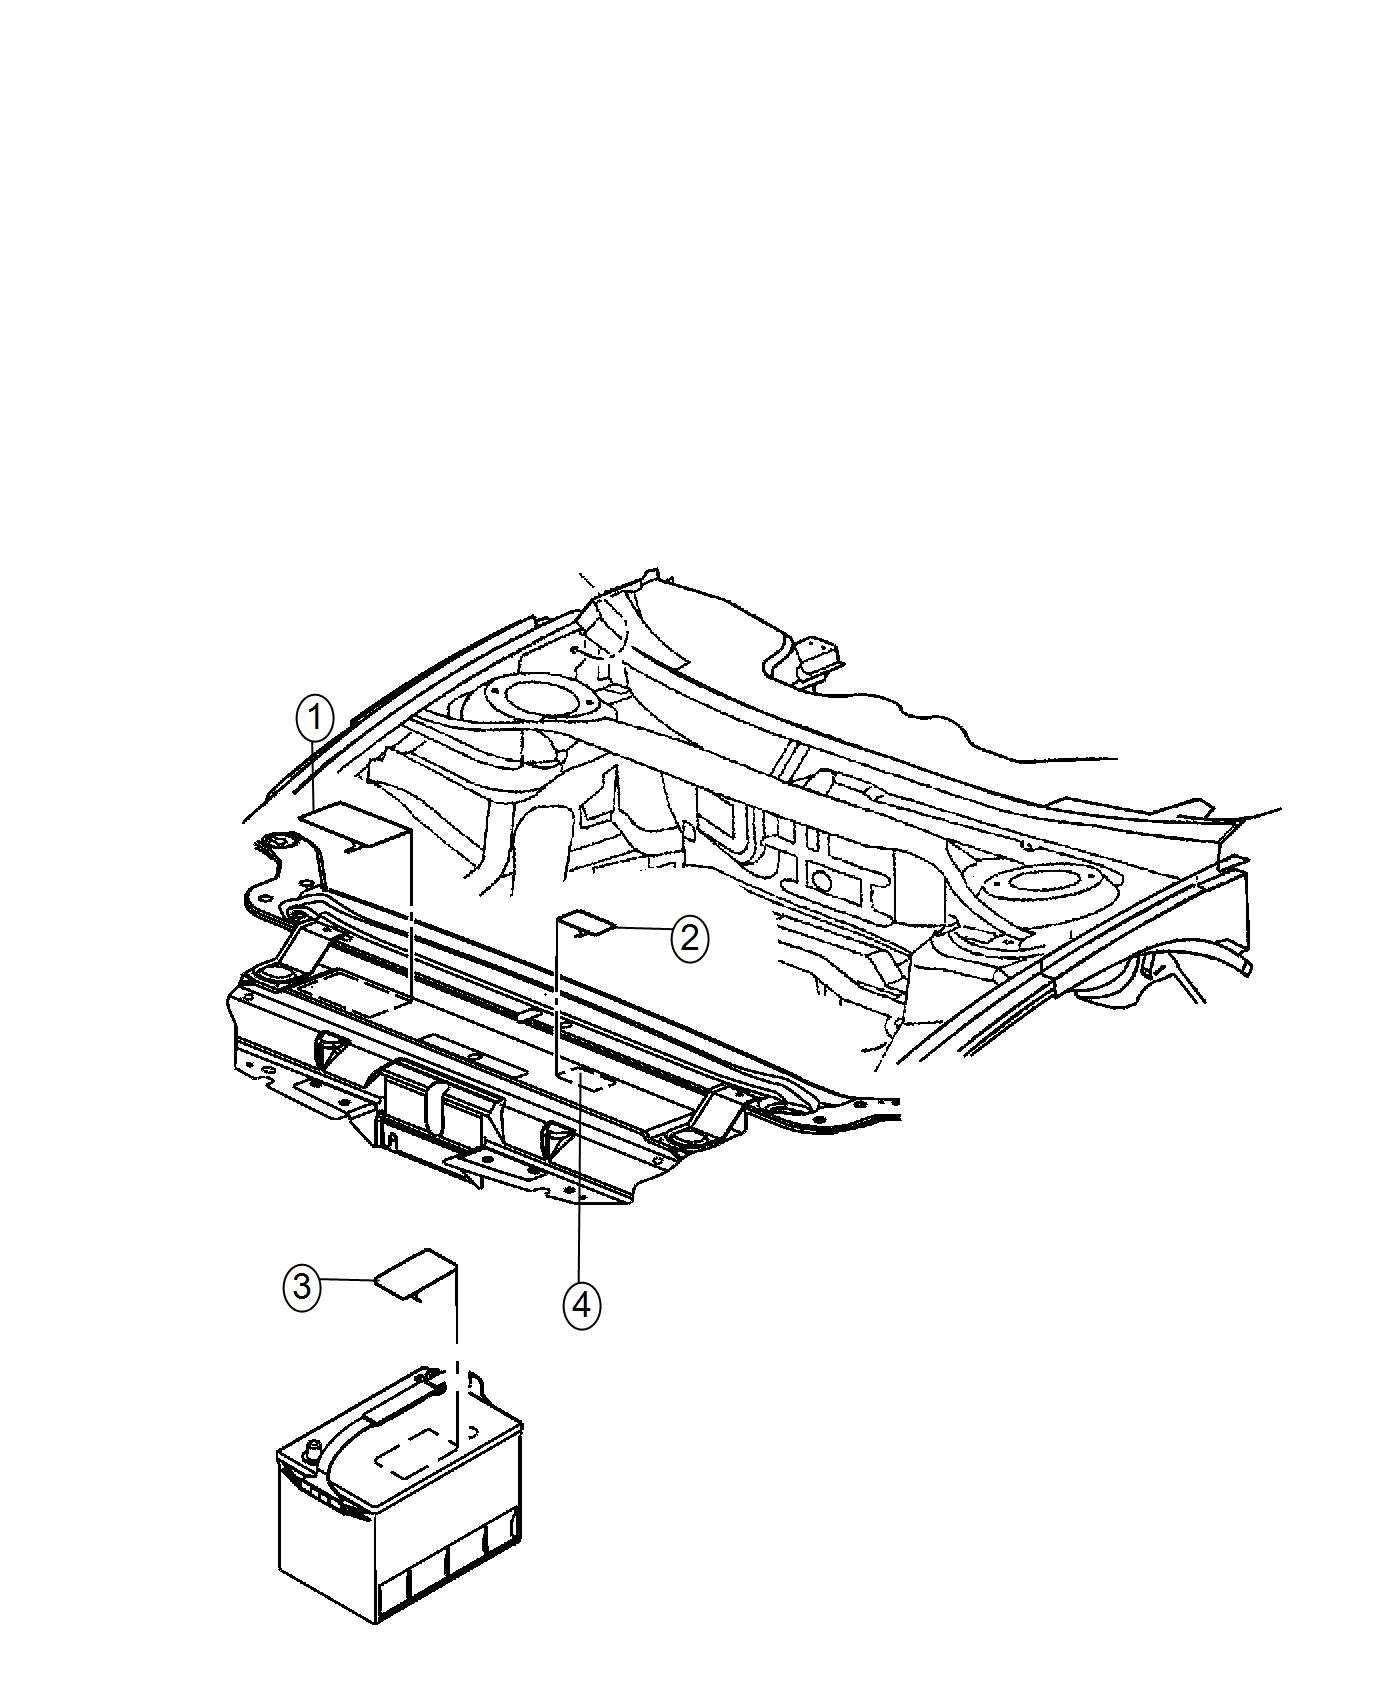 Dodge Charger Label Air Conditioning System